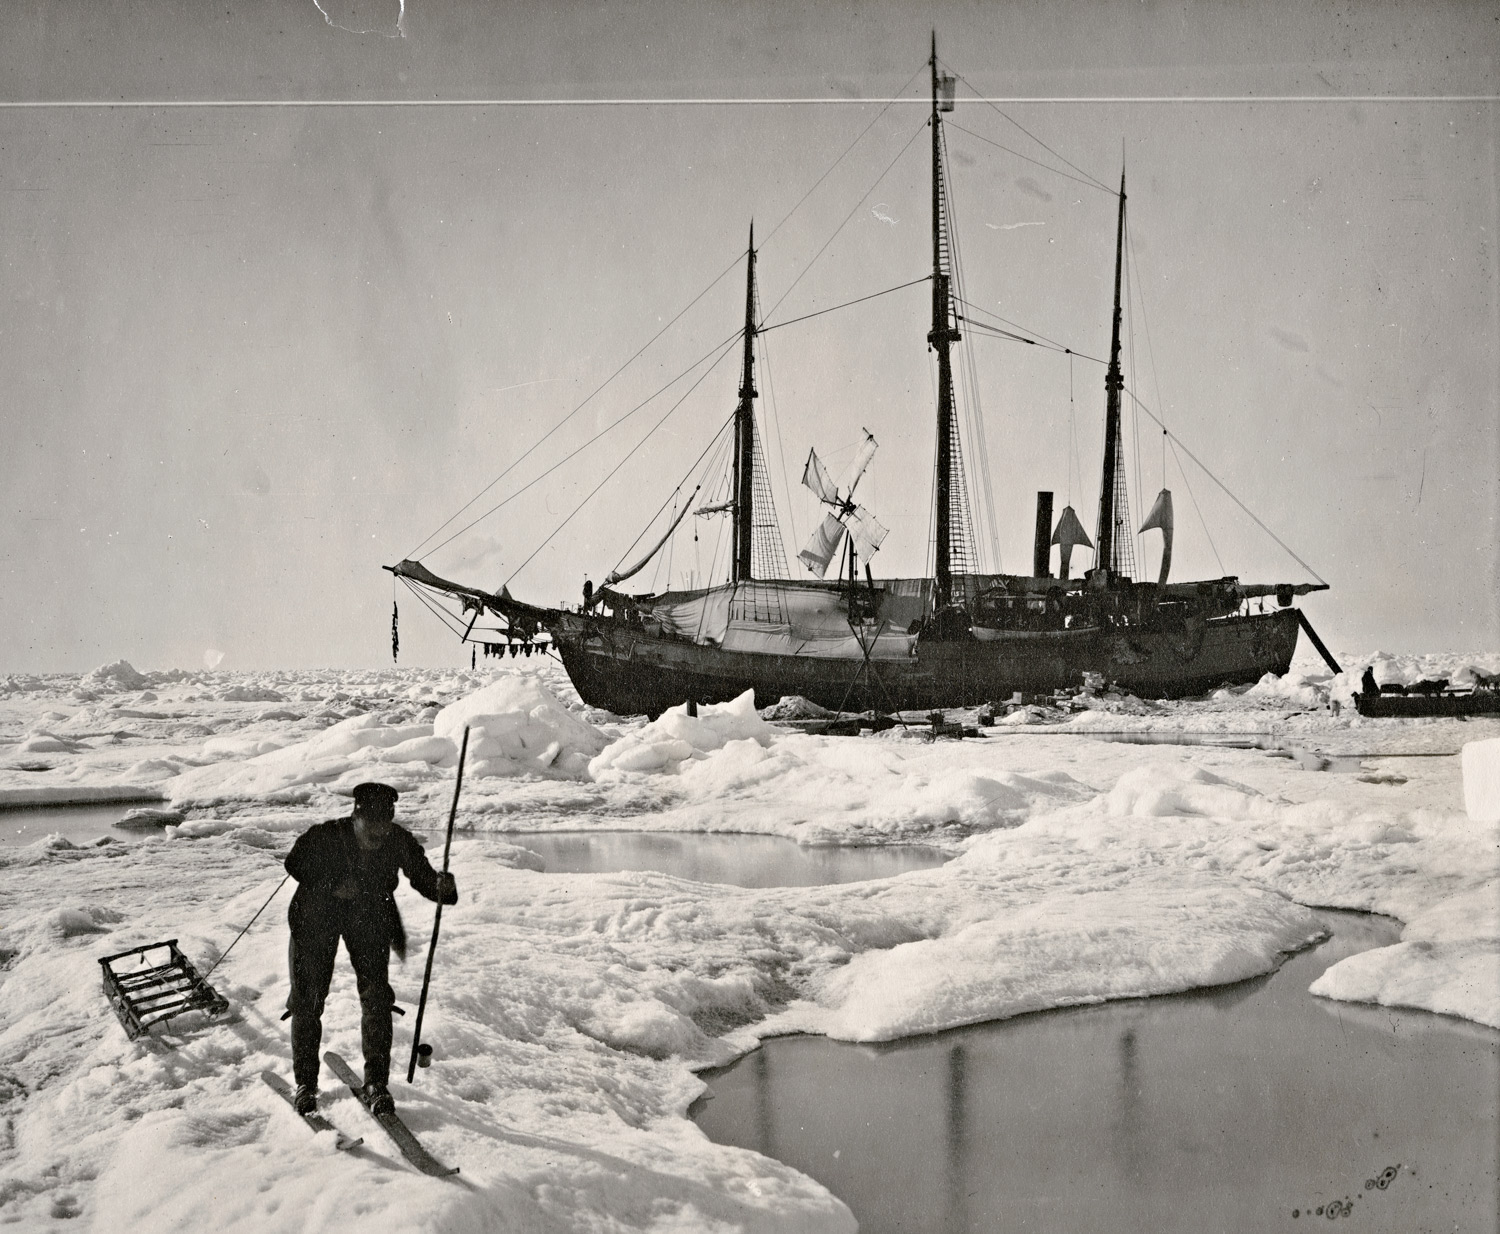 The Fram in Antarctica